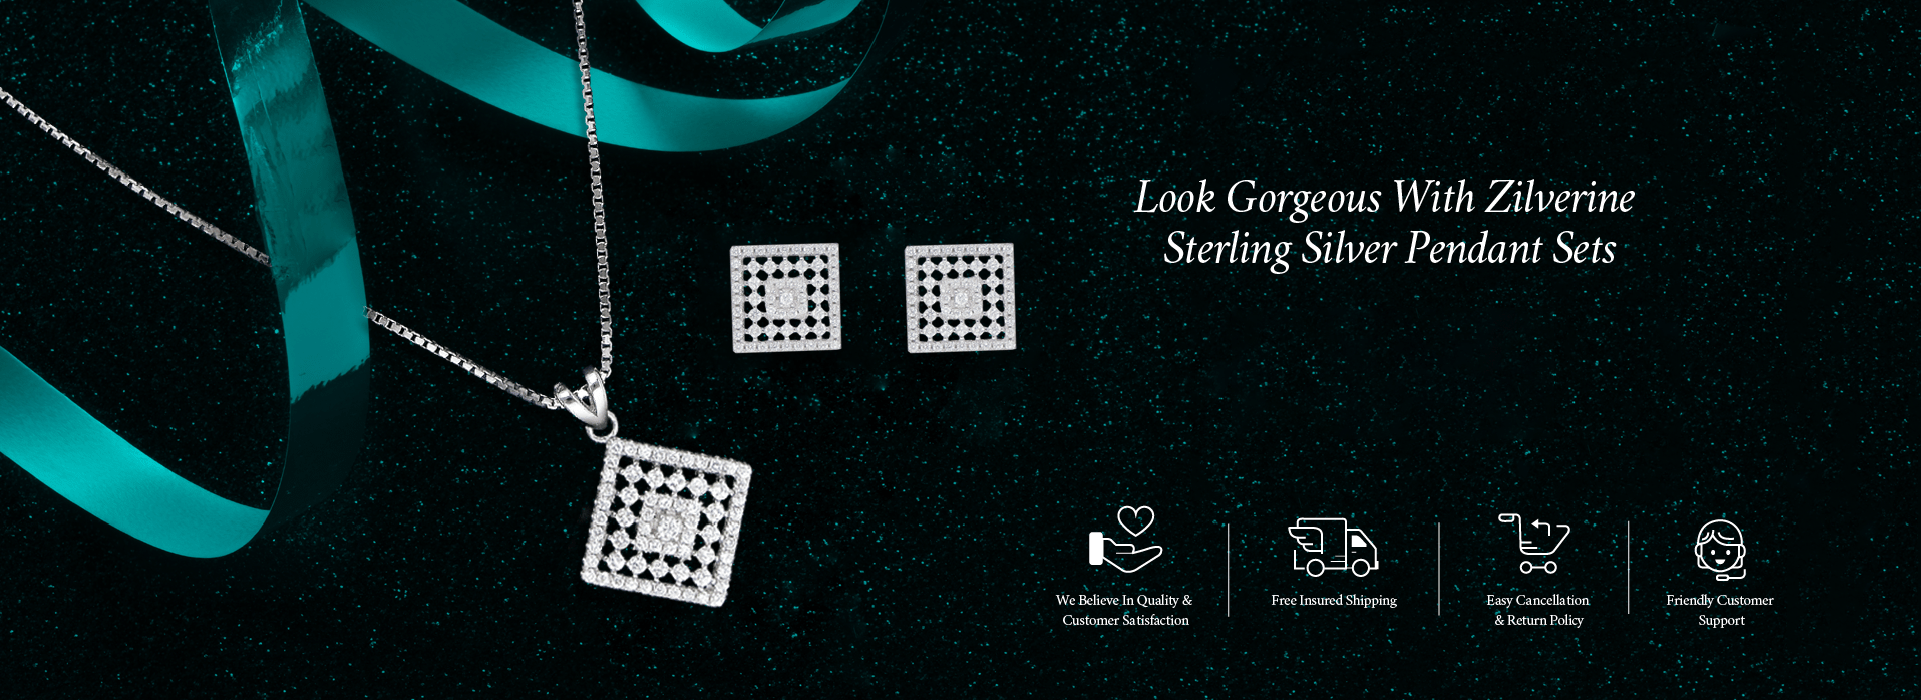 Look Gorgeous with Zilverine Sterling Silver Pendant Sets.